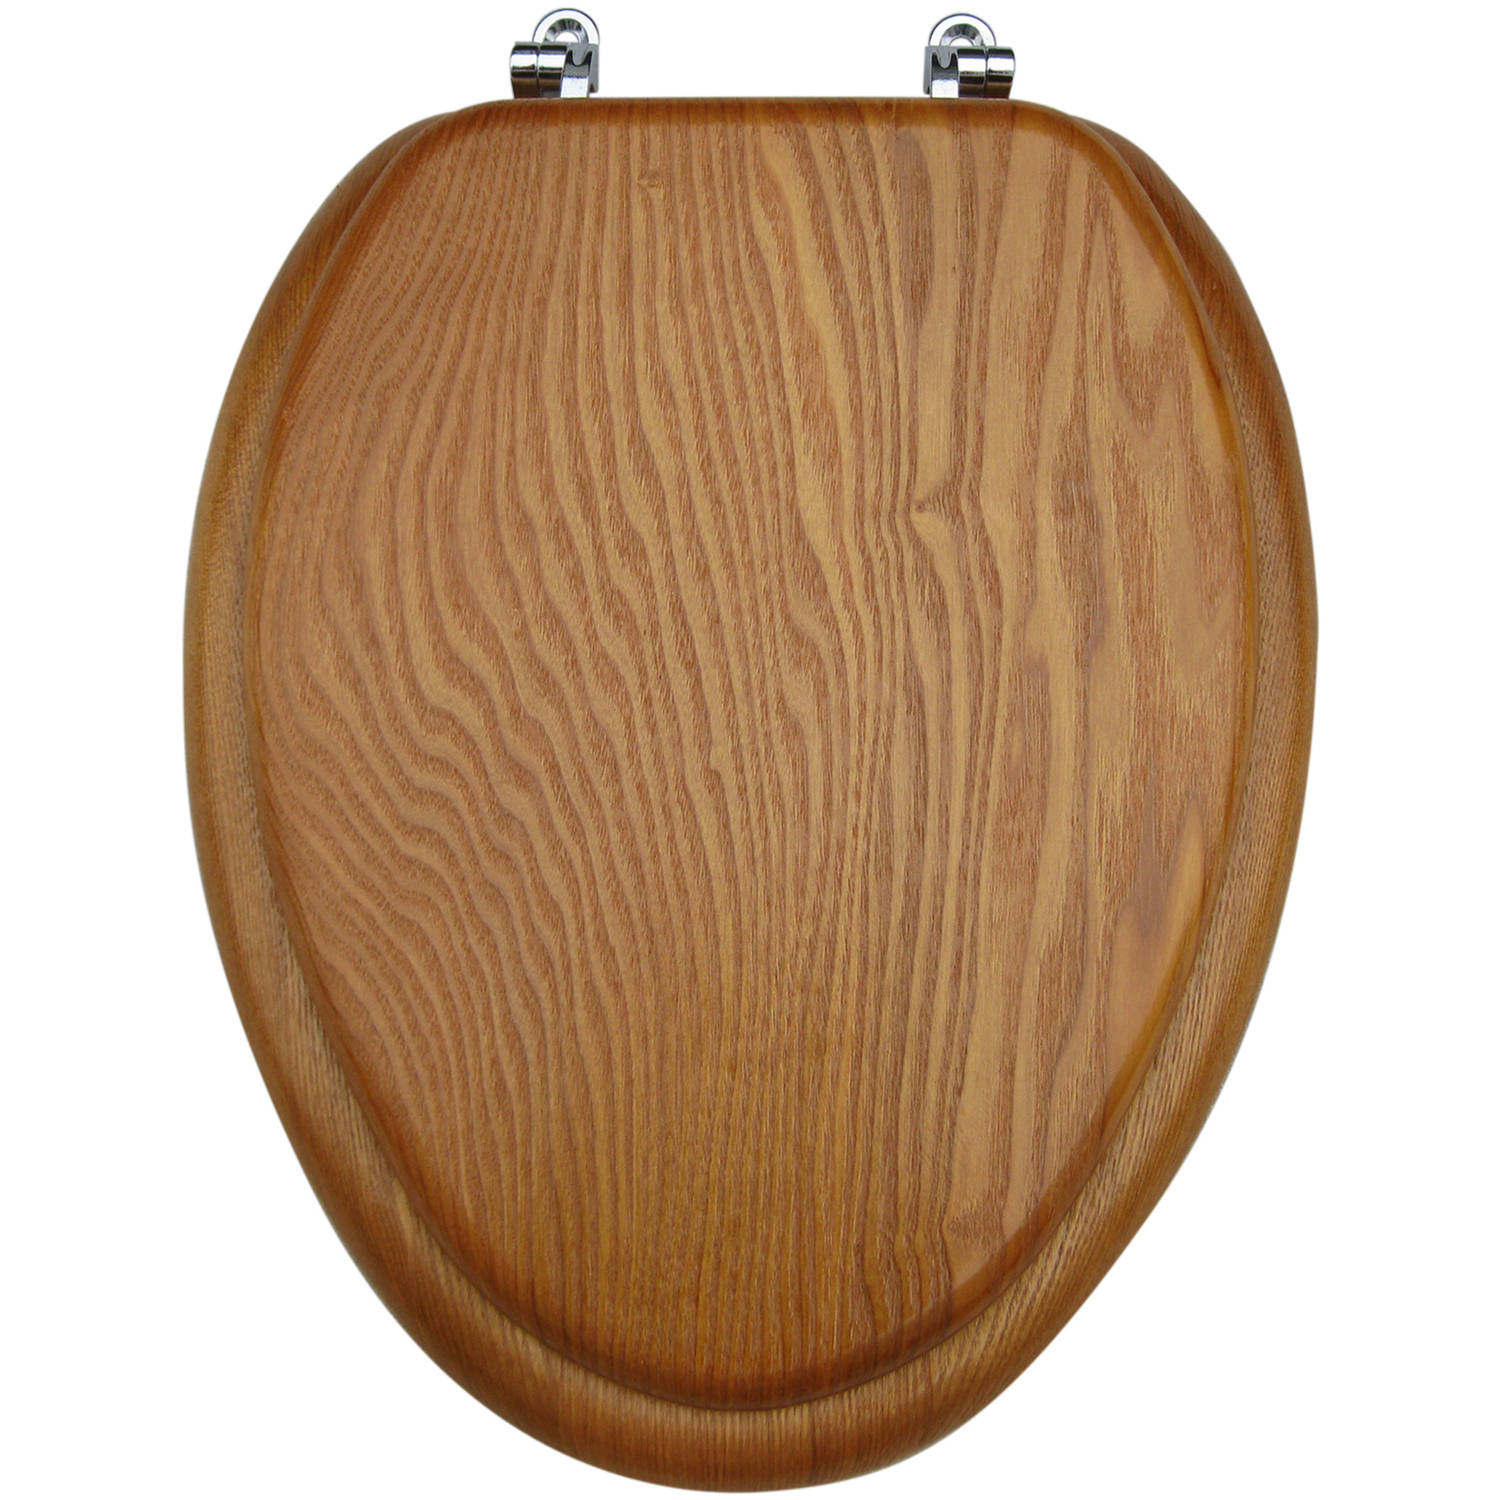 wooden toilet seat hinges.  Mainstays Medium Oak Elongated Toilet Seat Walmart com